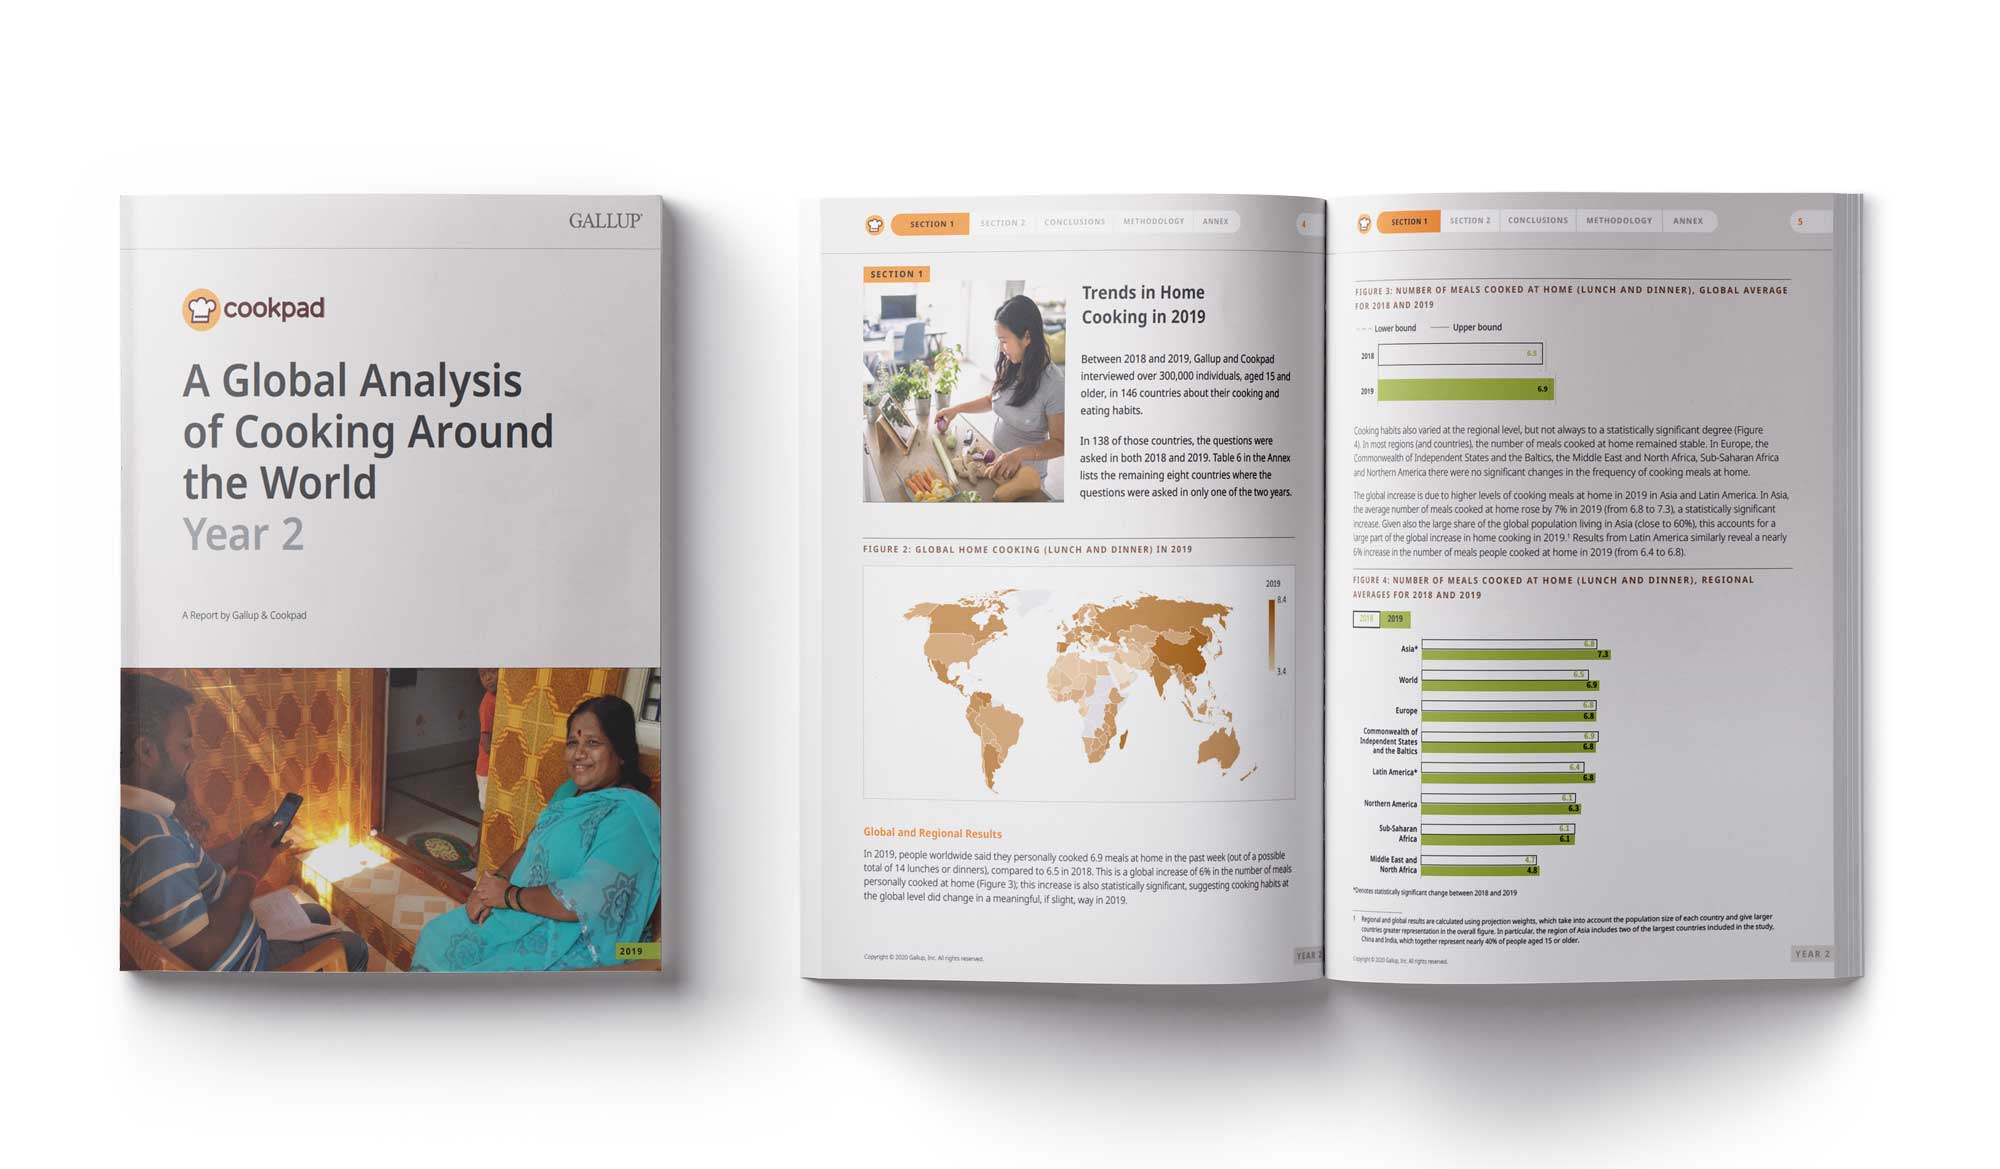 Descriptive images of the report A Global Analysis of Cooking Around the World: Year 2